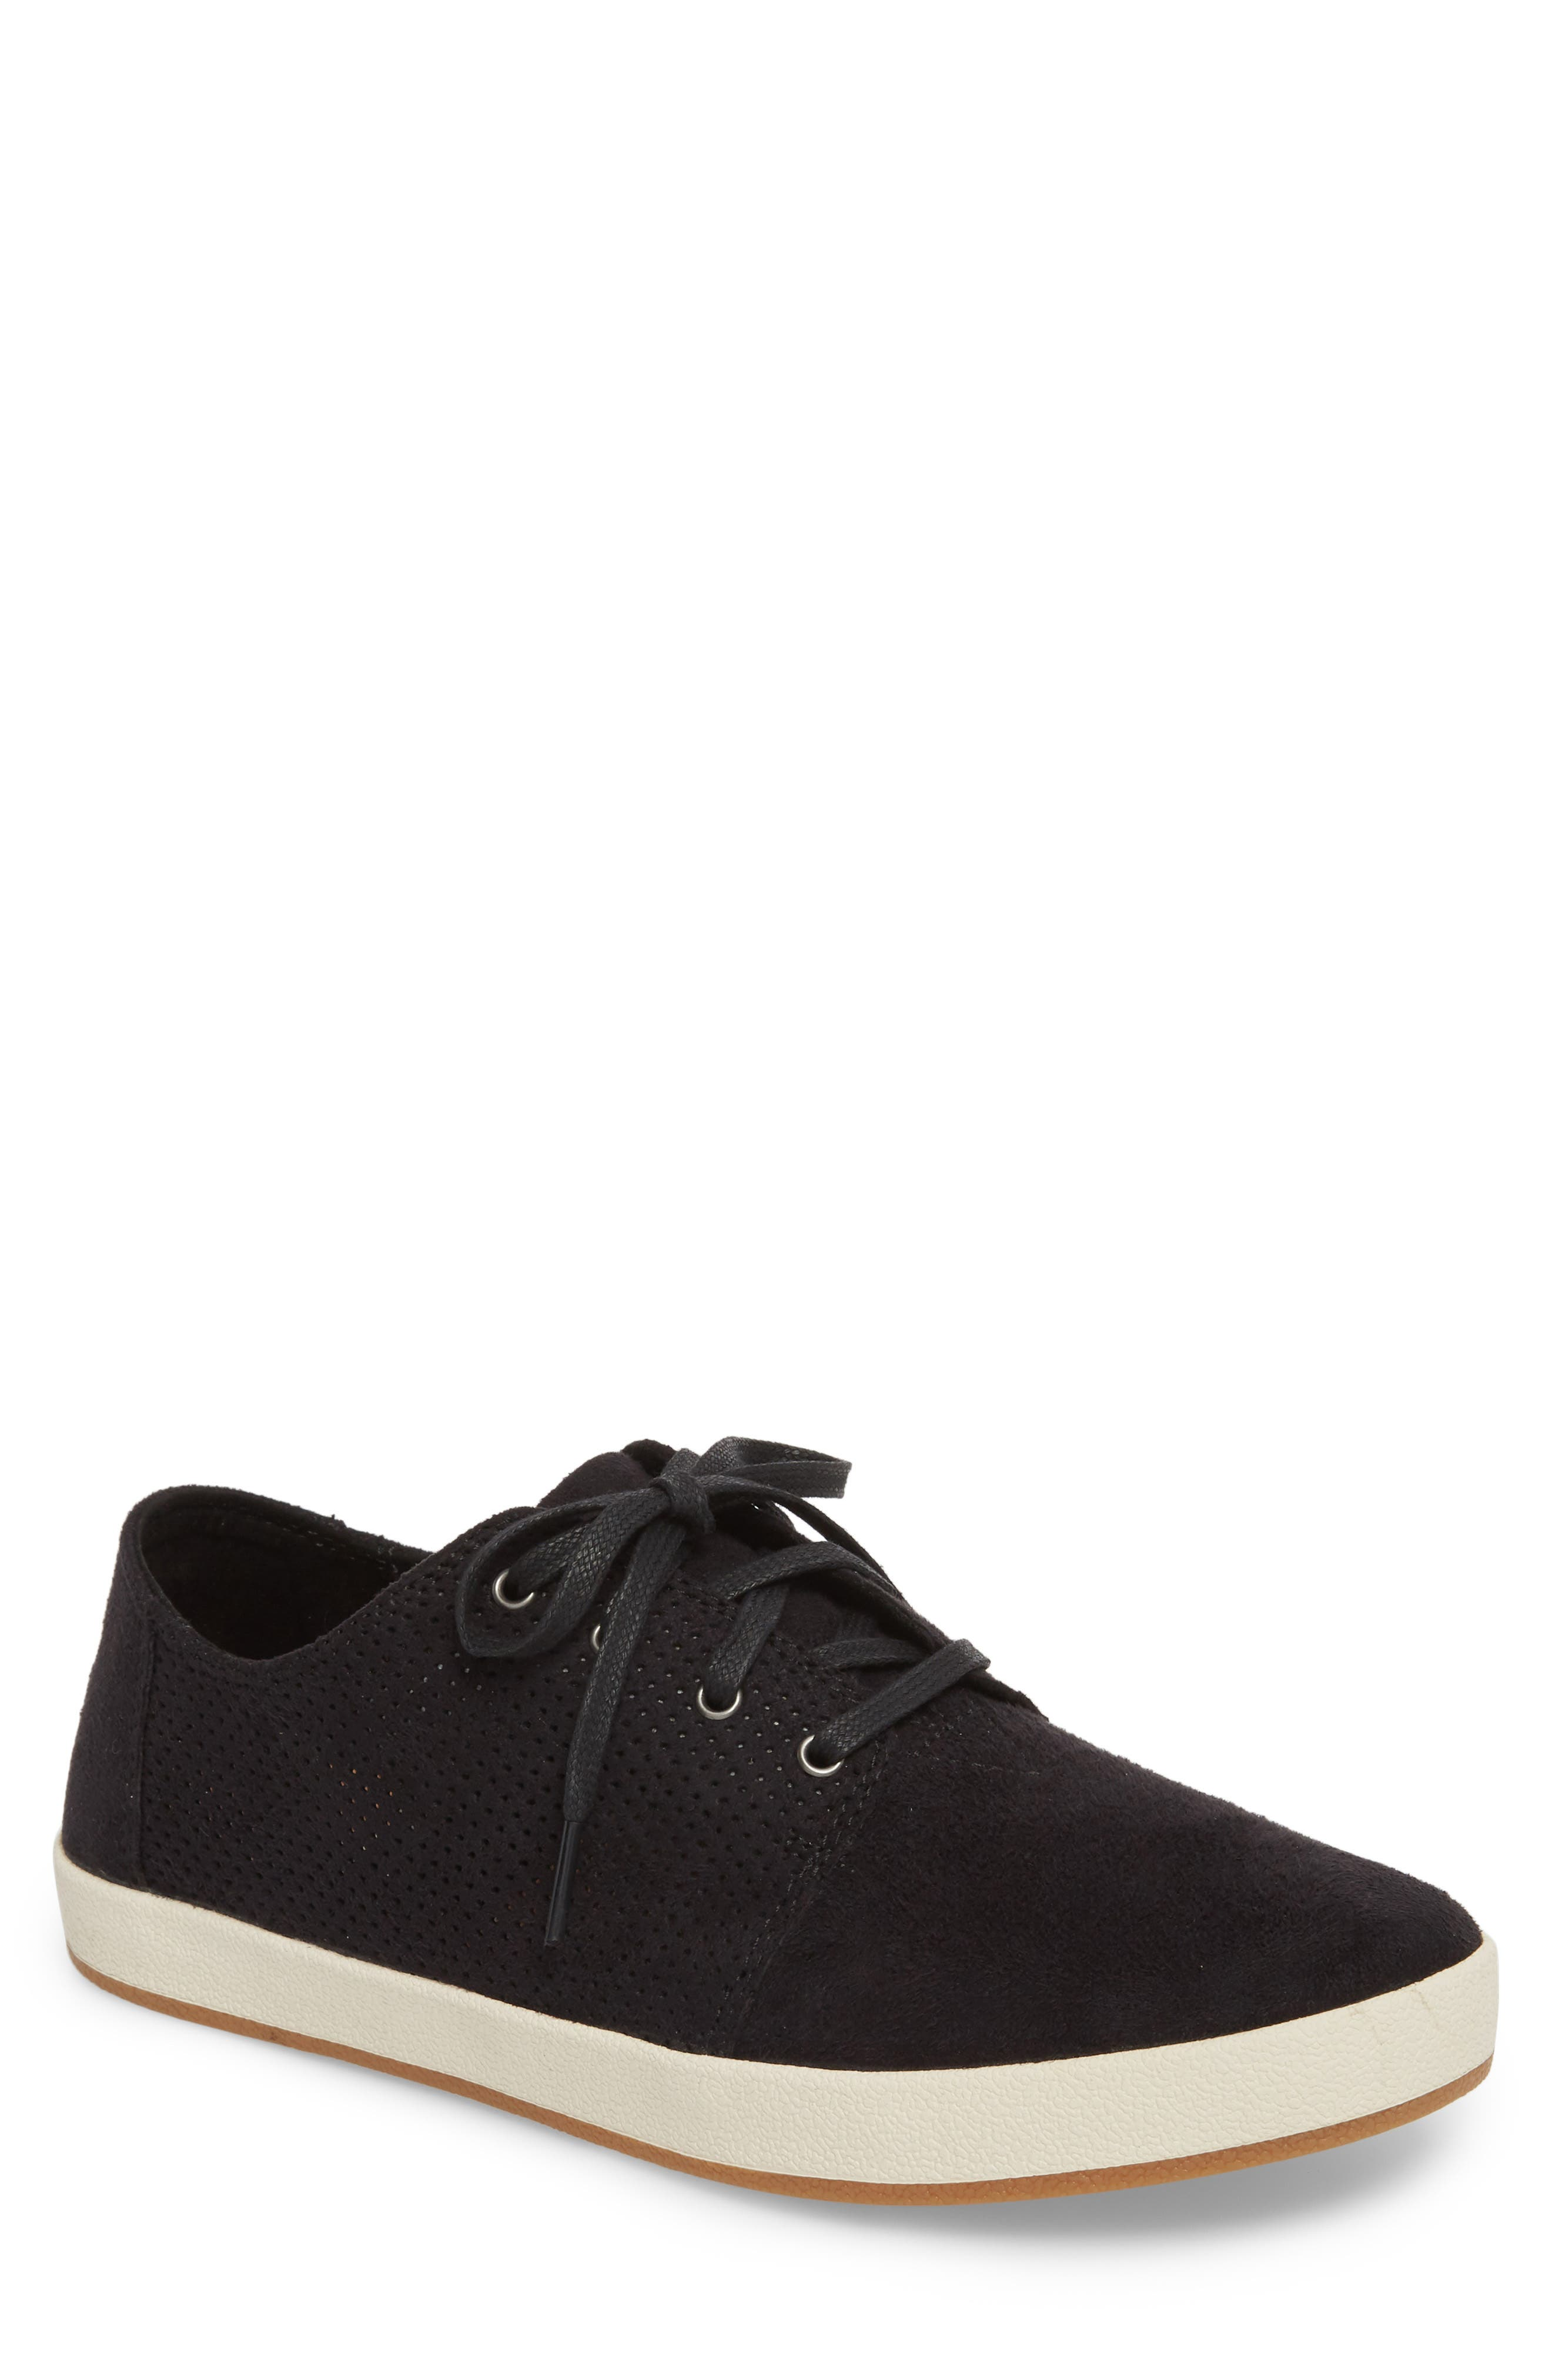 TOMS Payton Perforated Sneaker, Main, color, 001